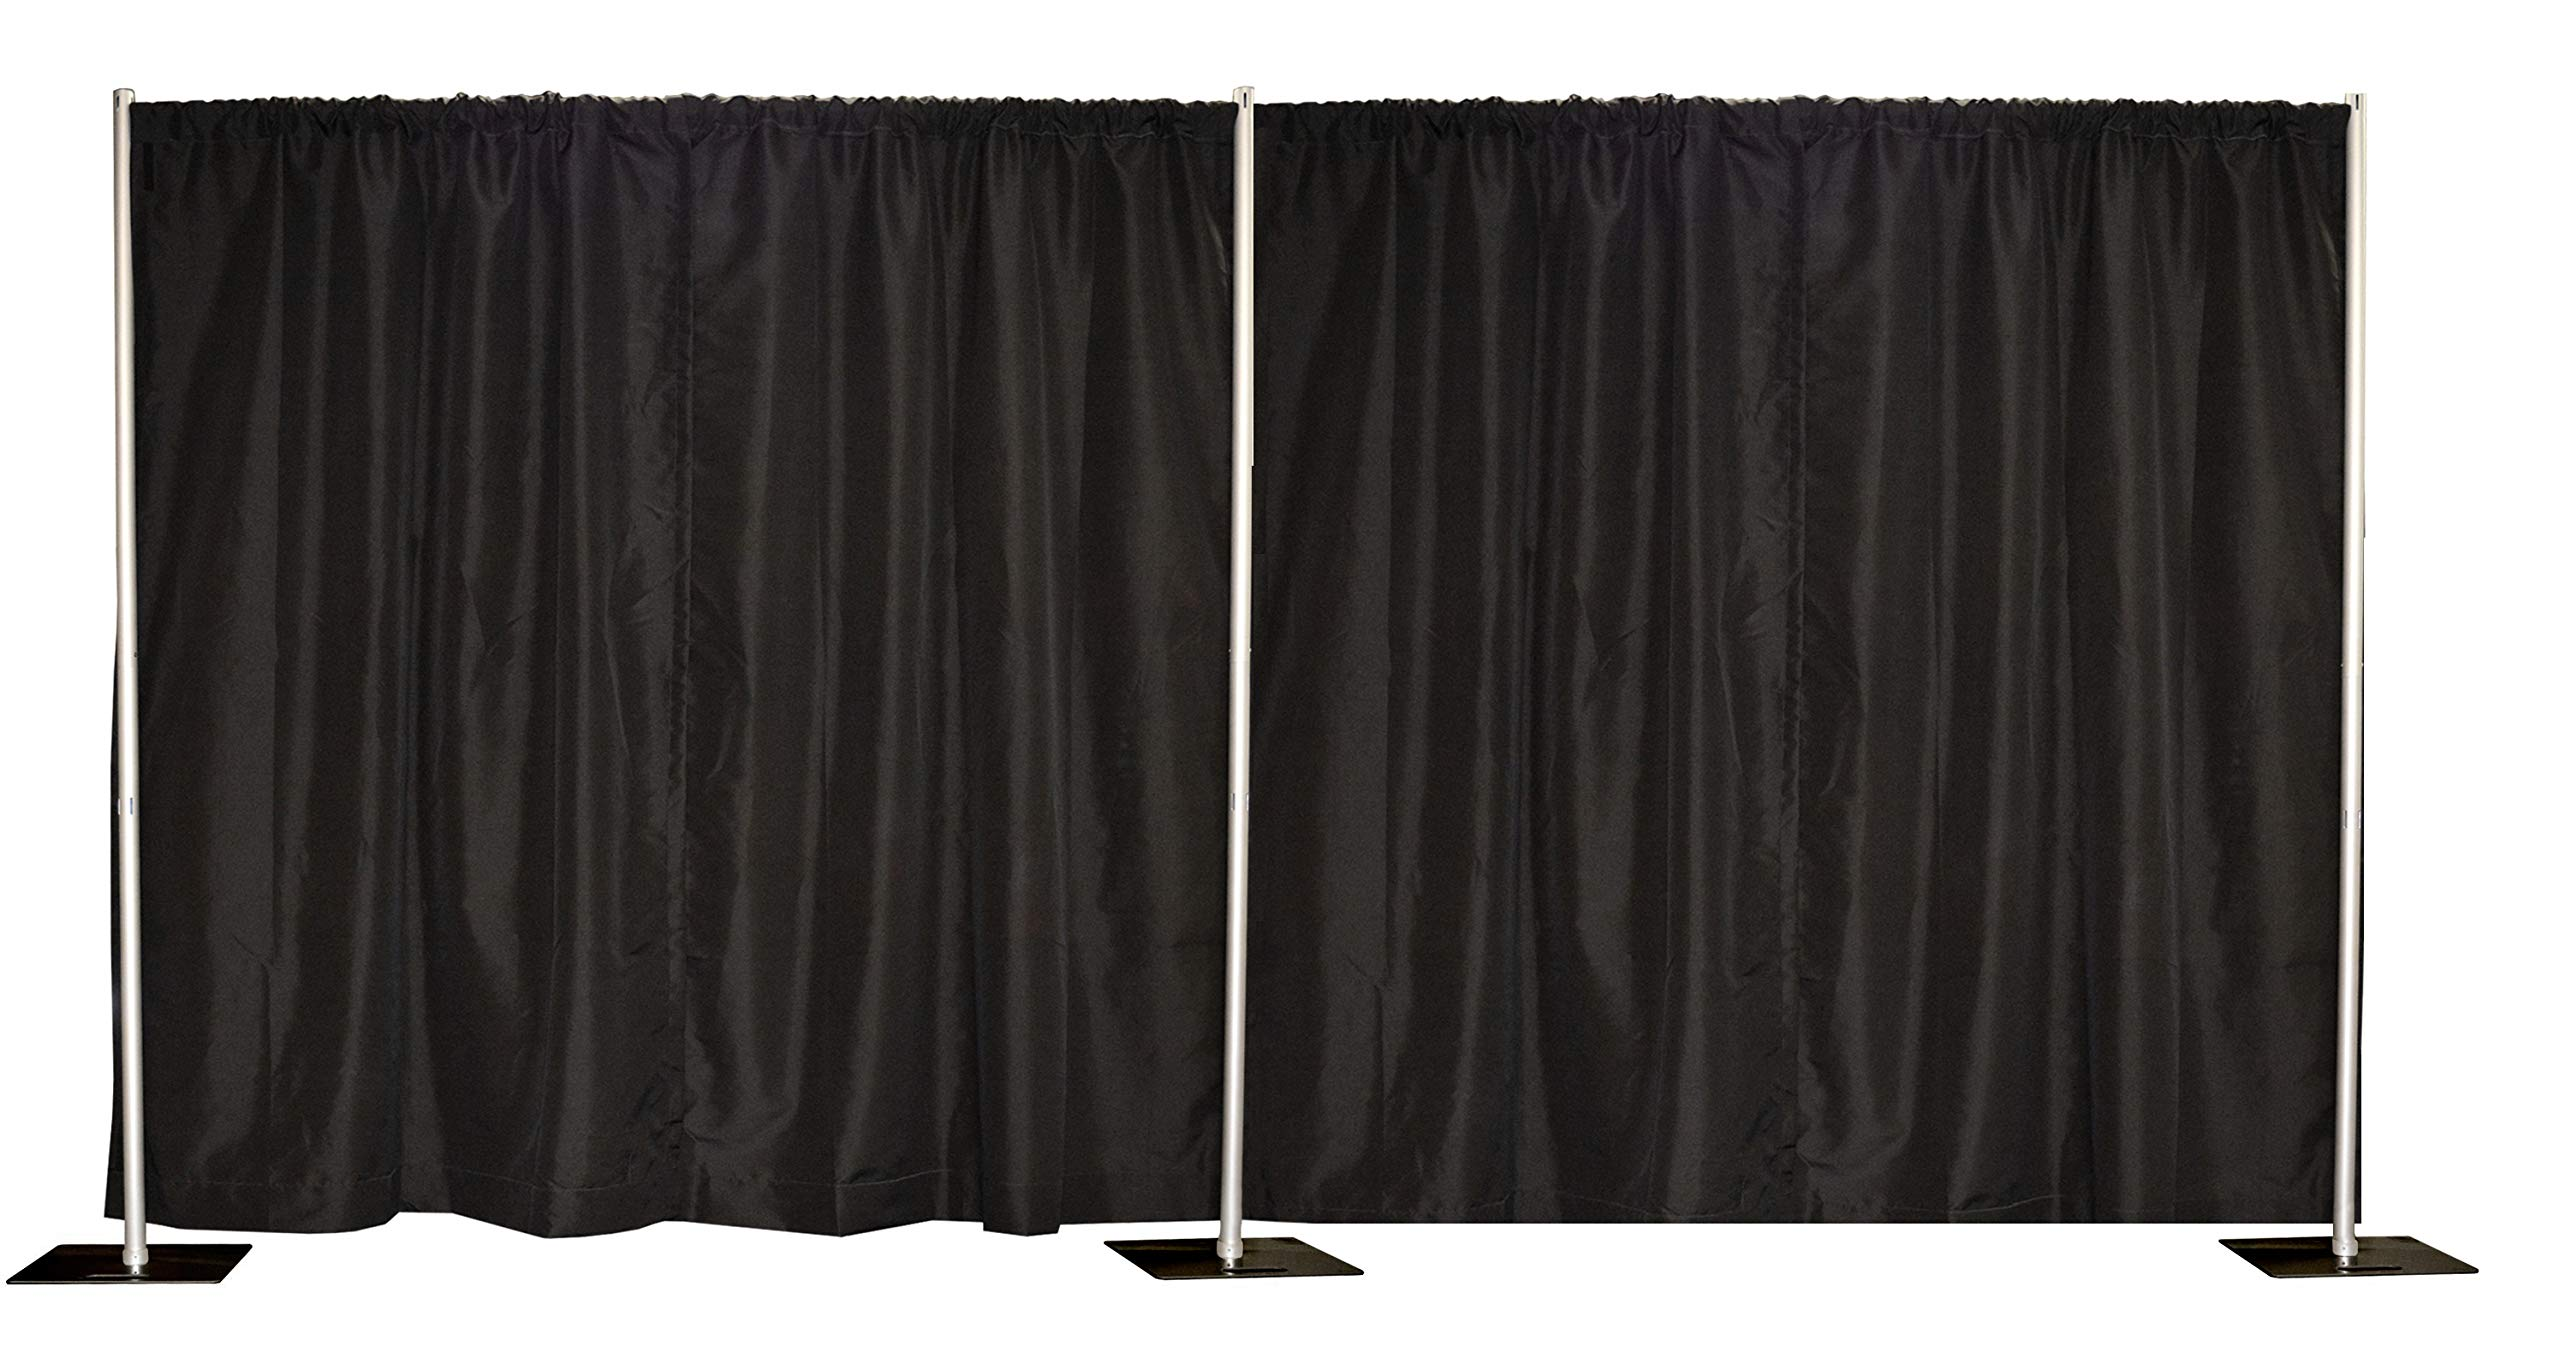 10' x 20' Pipe and Drape, Backdrop Kit, Adjustable uprights (Black) by Crowd Control Center